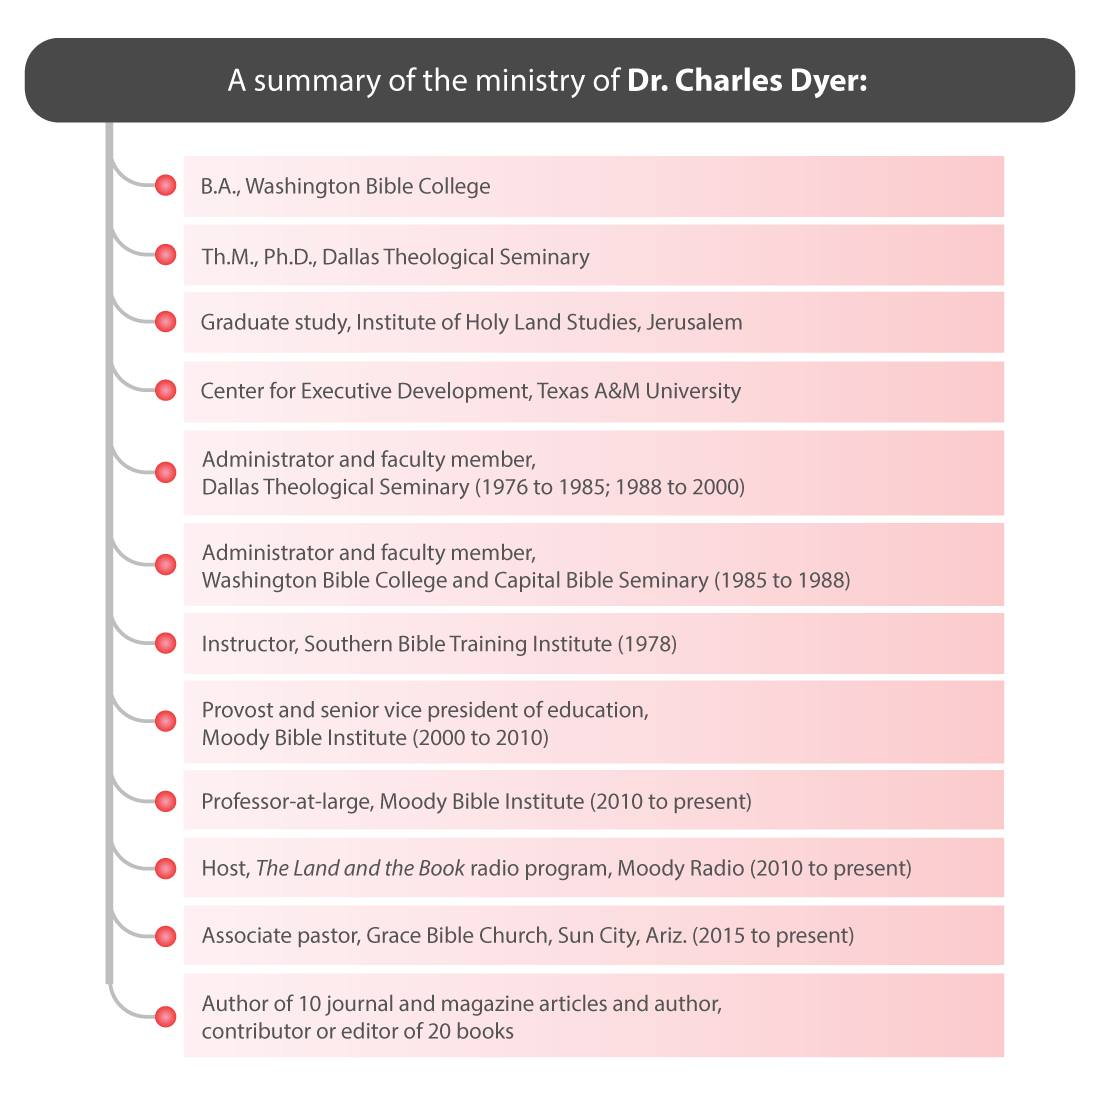 Charles Dyer Summary